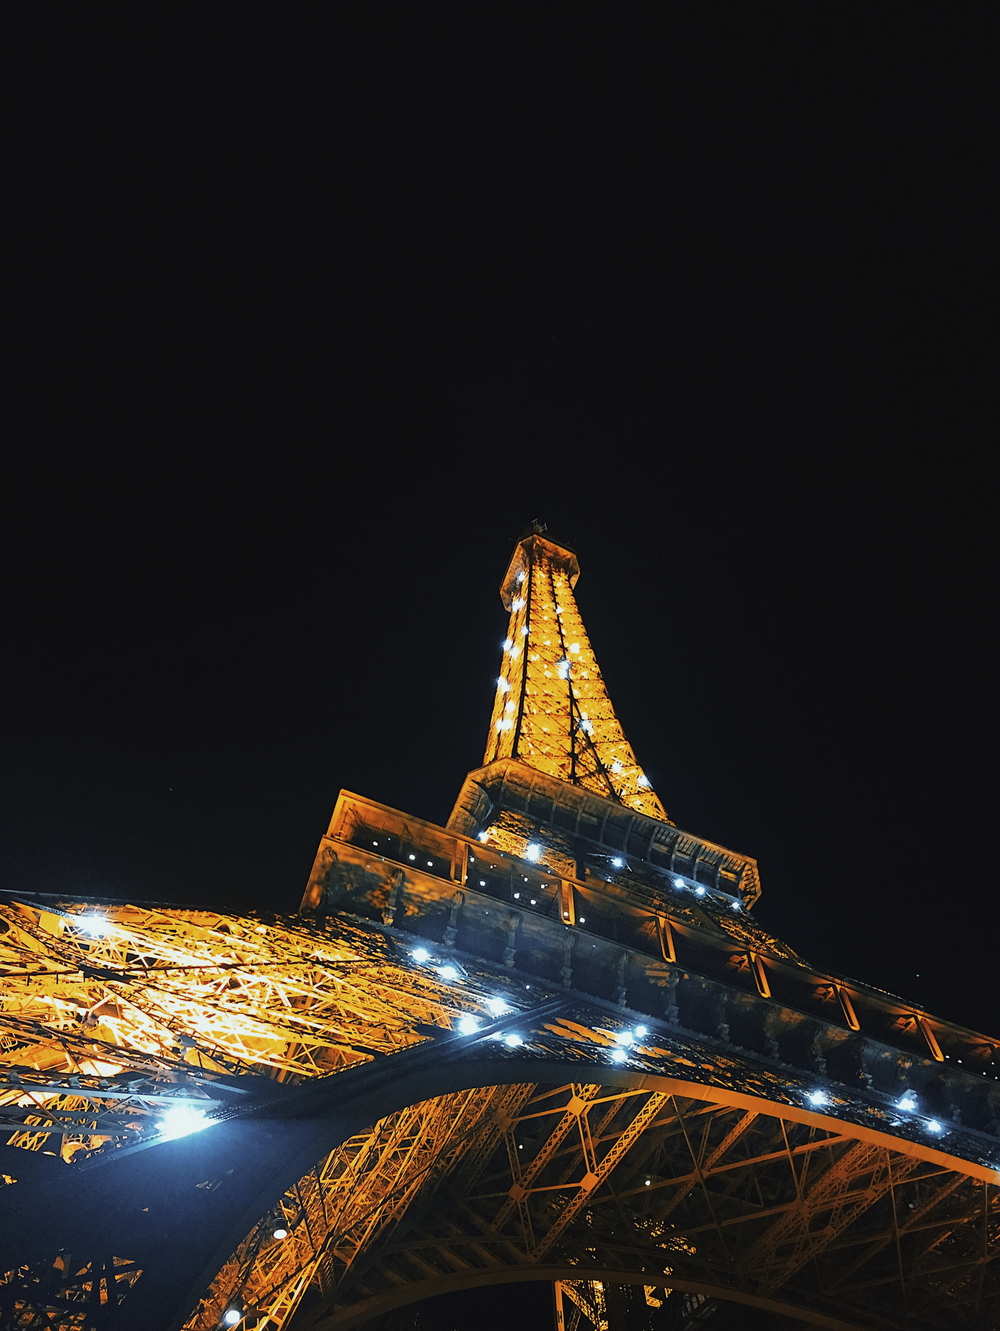 The Paris Bucket List - Eiffel Tower light show